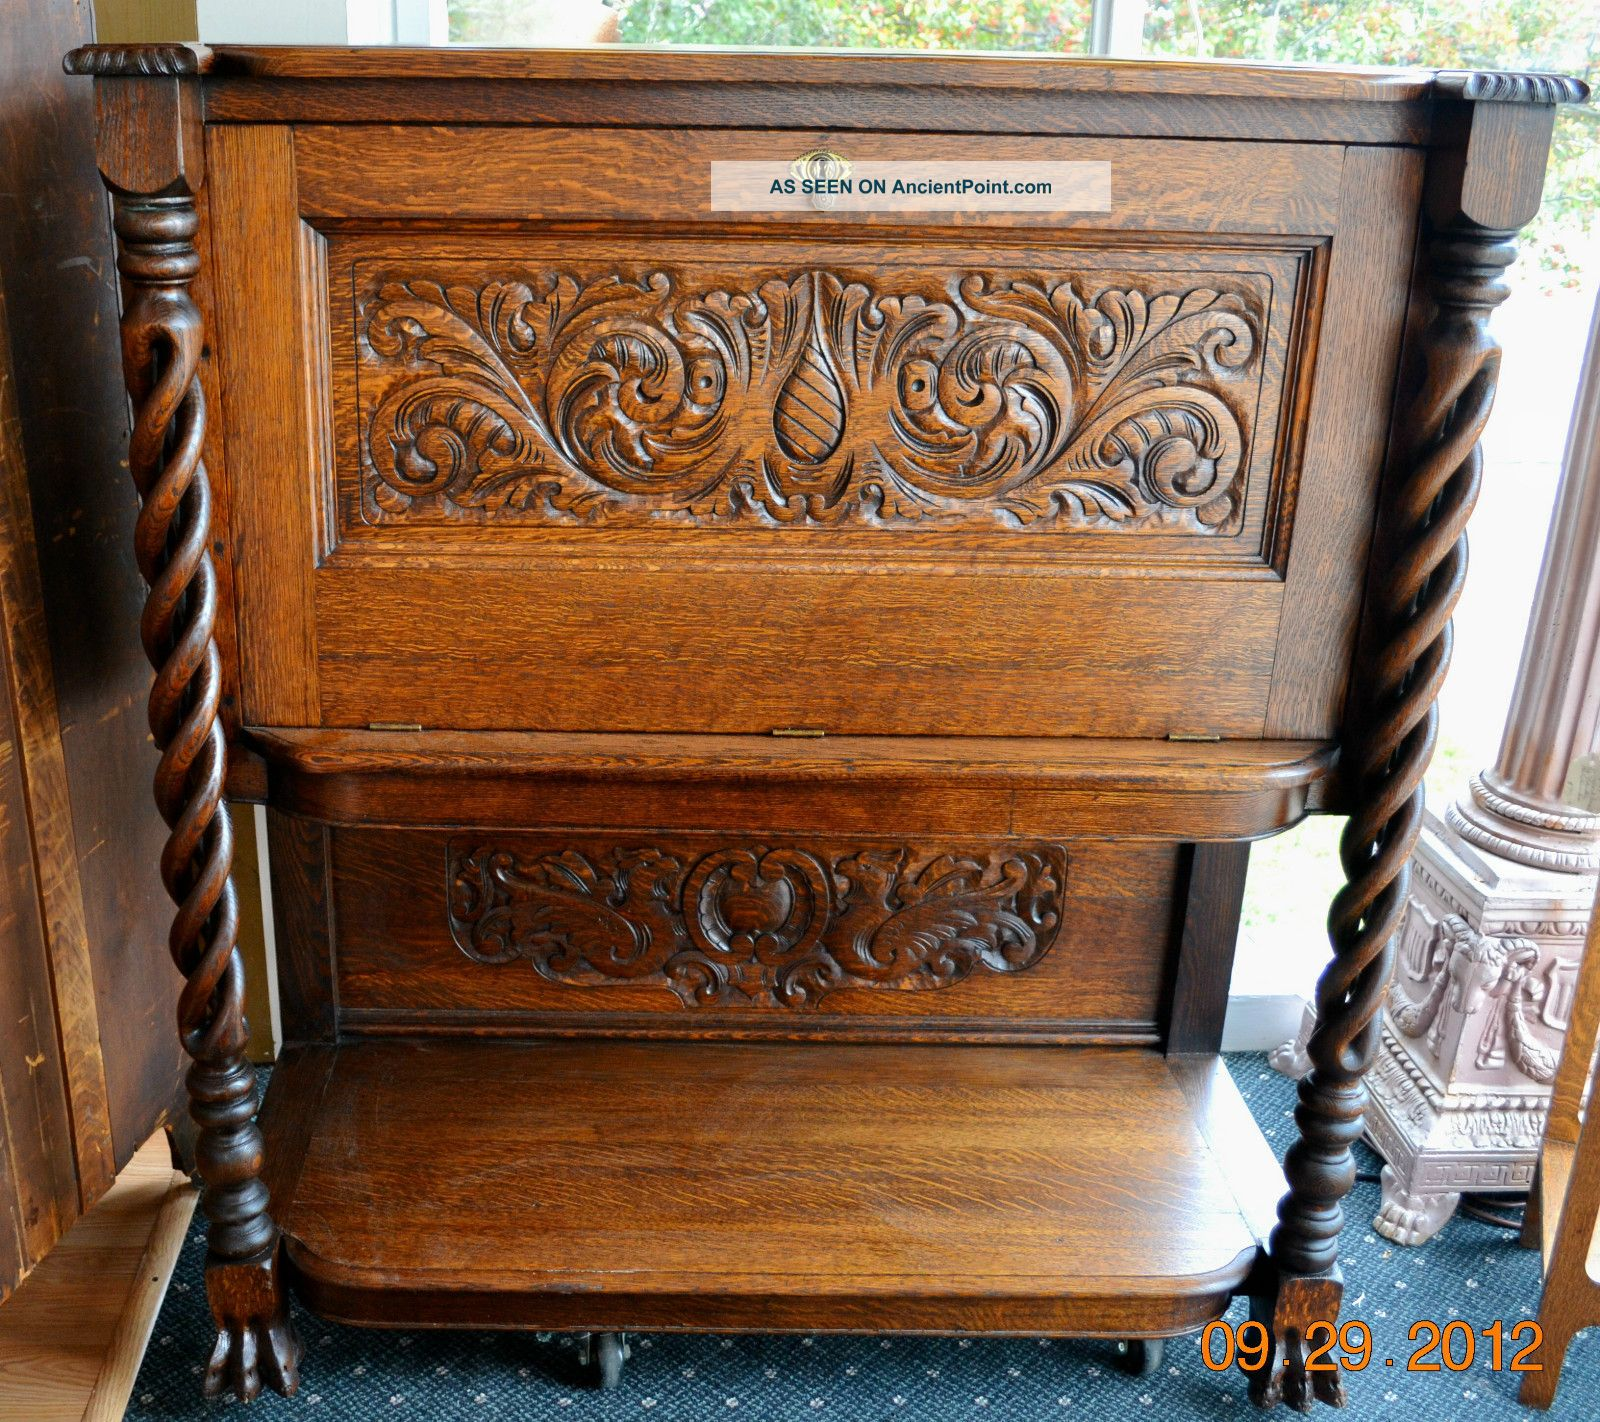 Gorgeous Antique Oak Liquor Cabinet, Carved Open Twists, Claw Feet,  Refinished